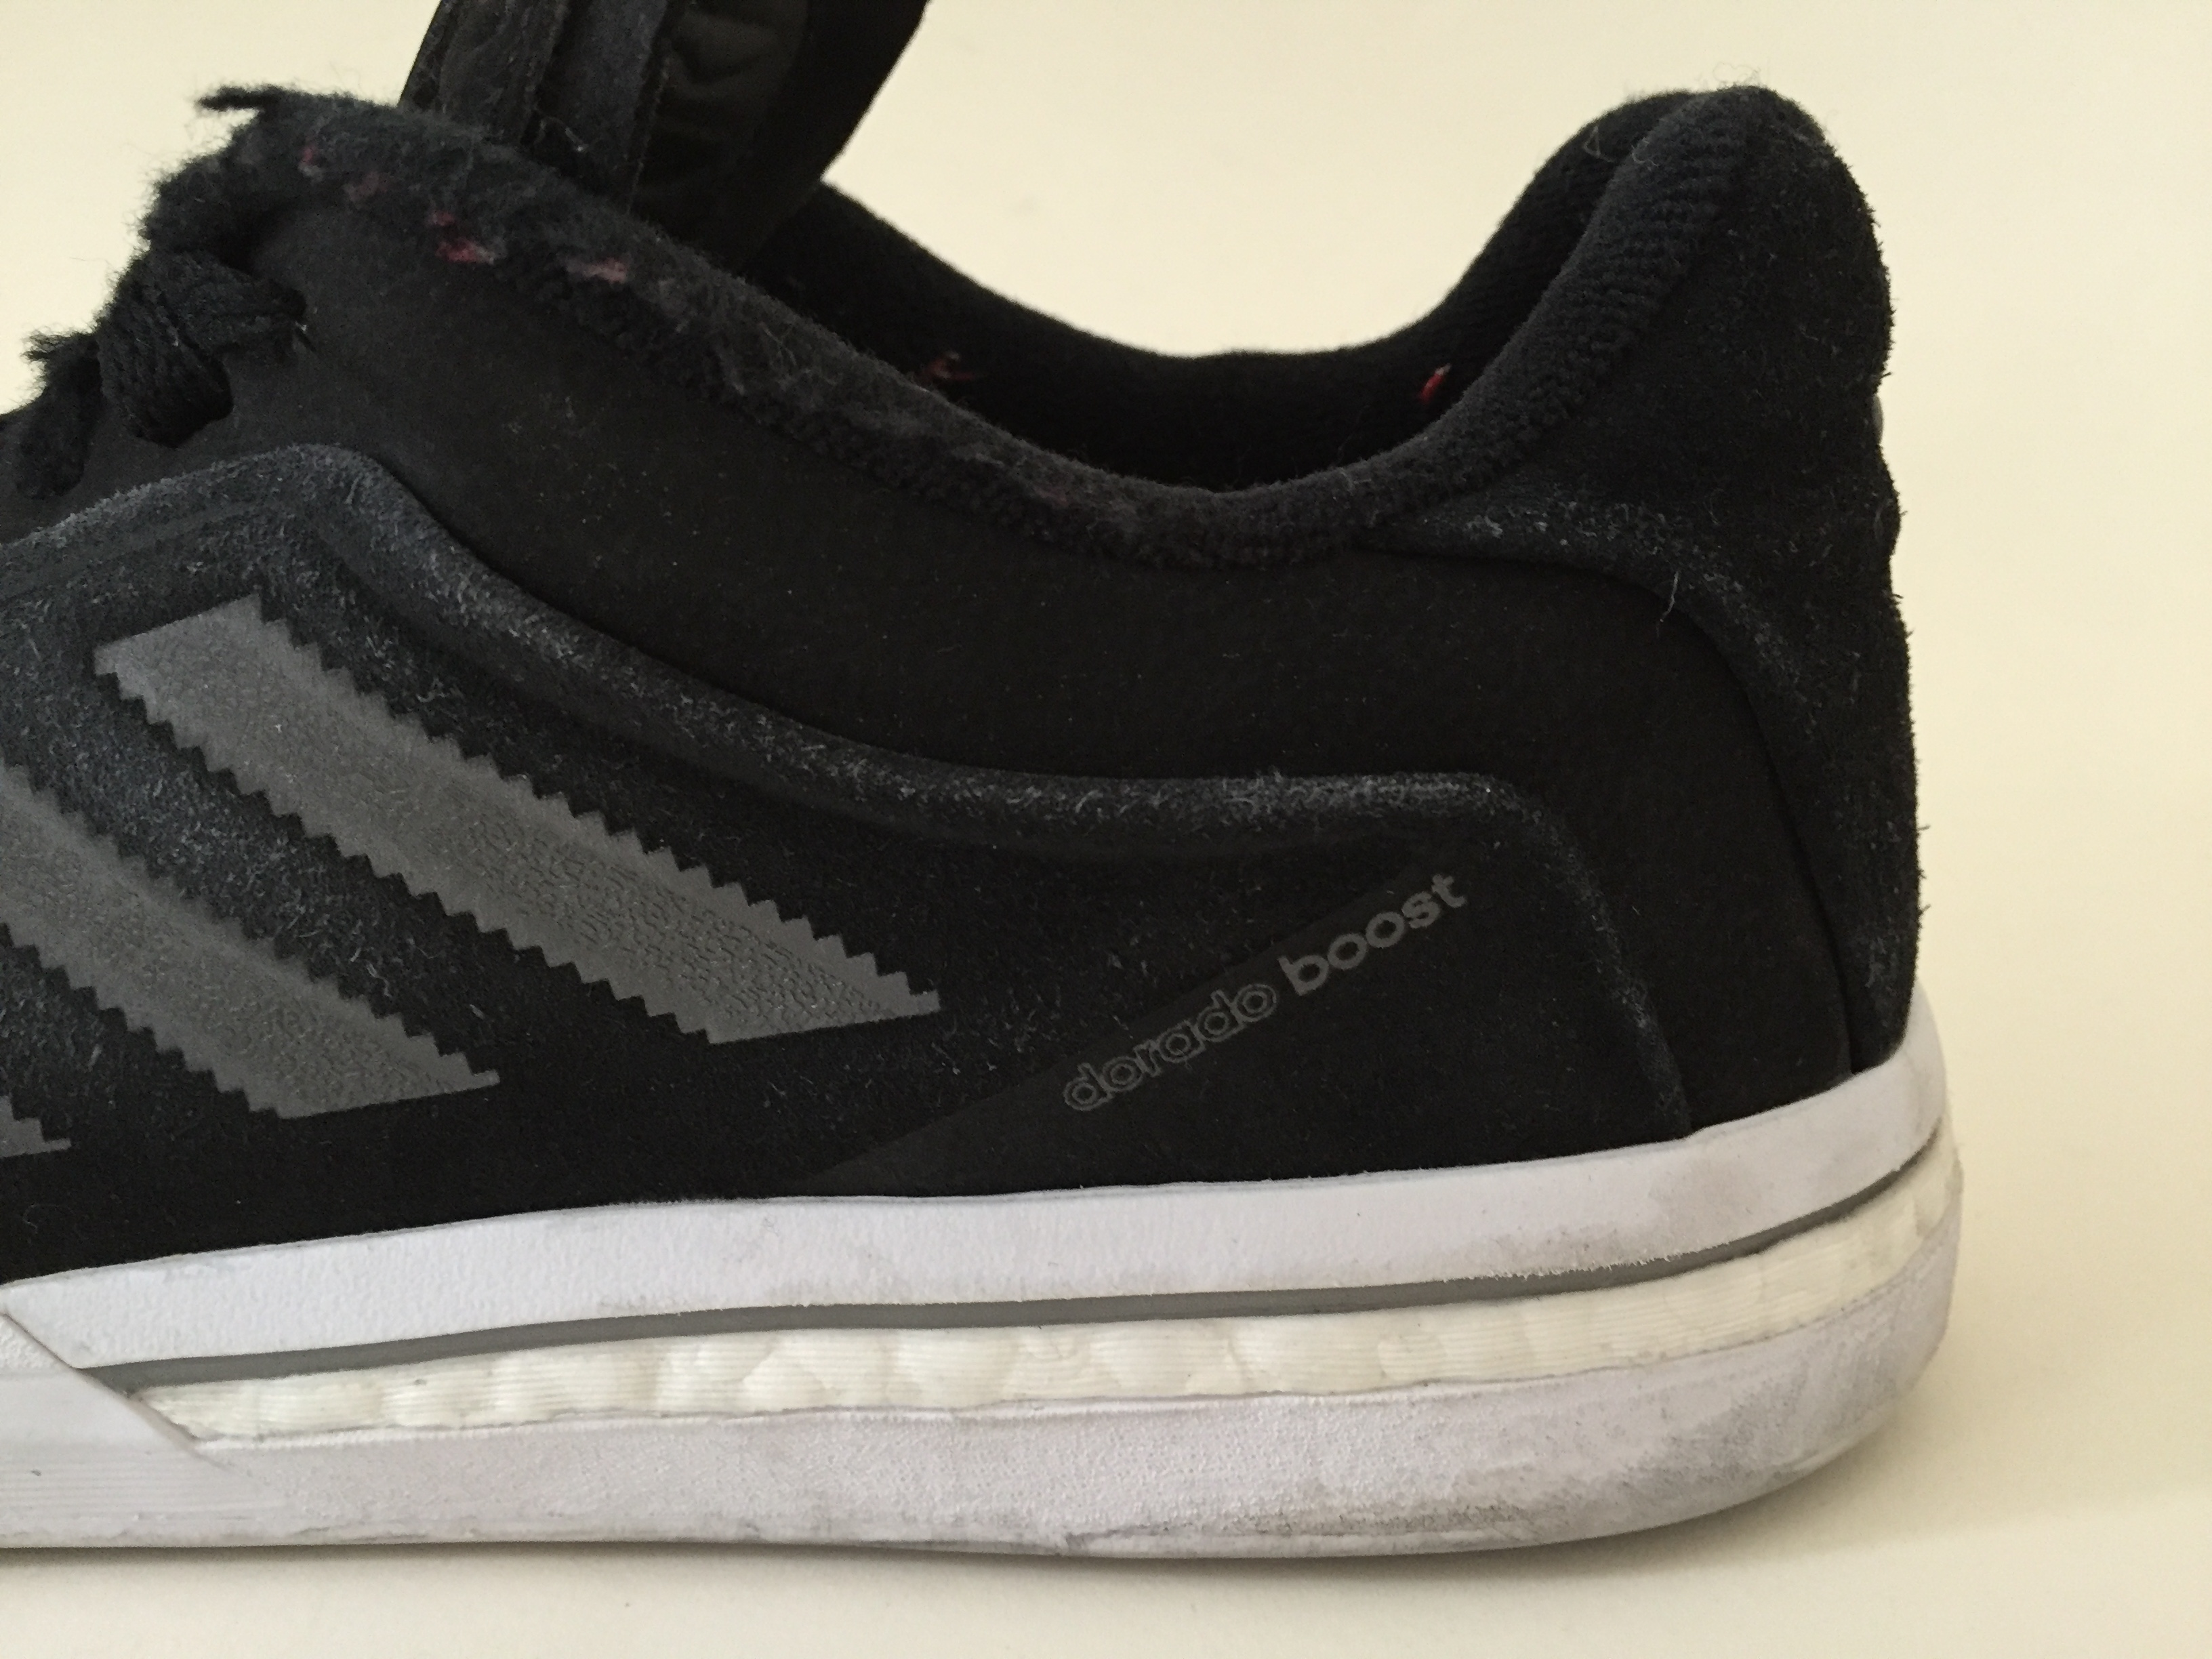 8db88a1a0c12 adidas Archives - Weartested - detailed skate shoe reviews